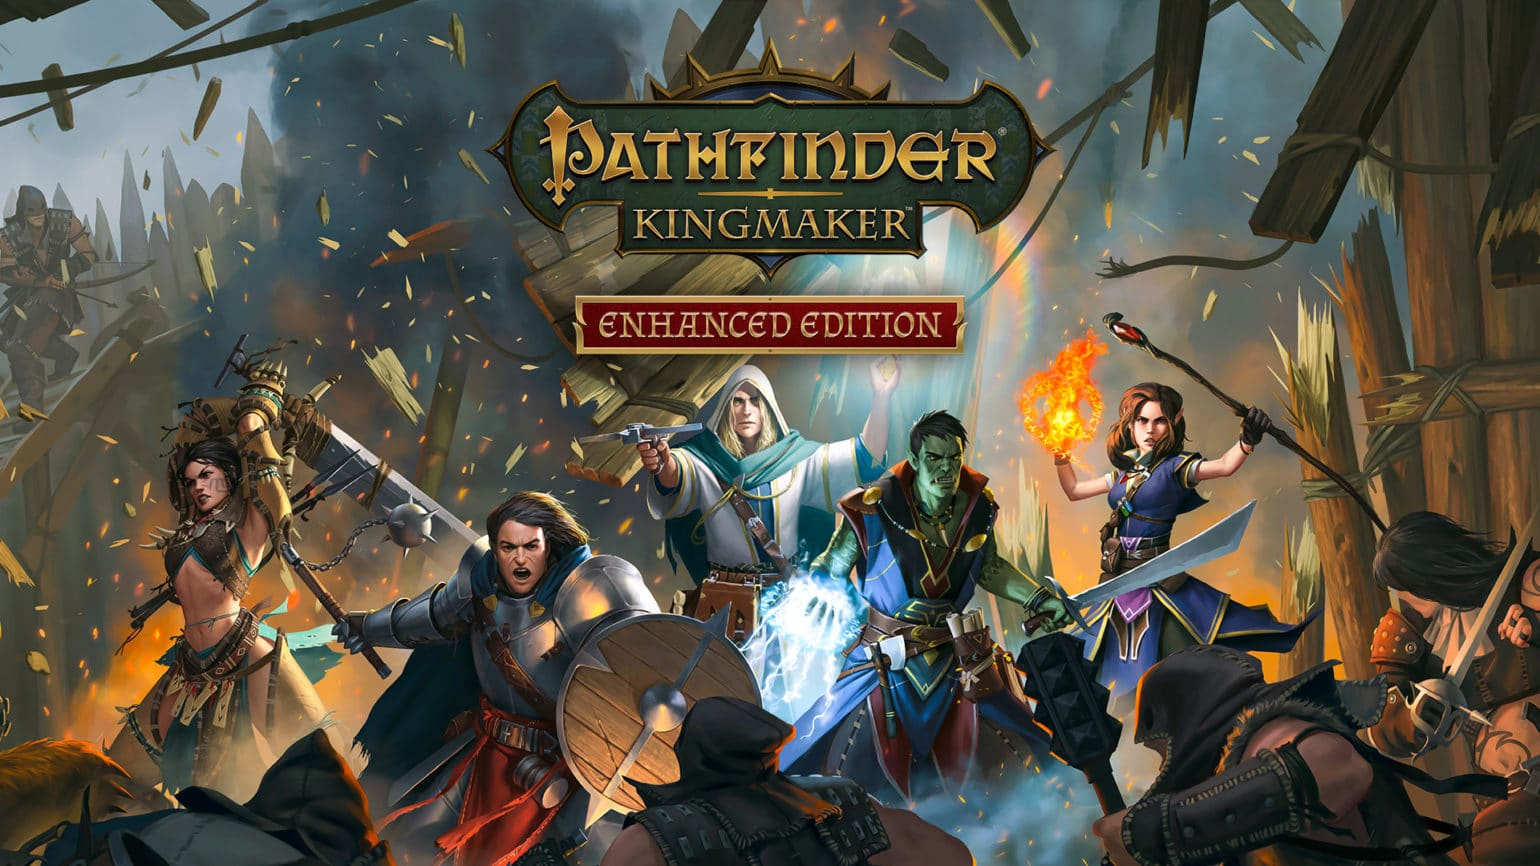 Affiche lancement Pathfinder kingmaker enhanced edition